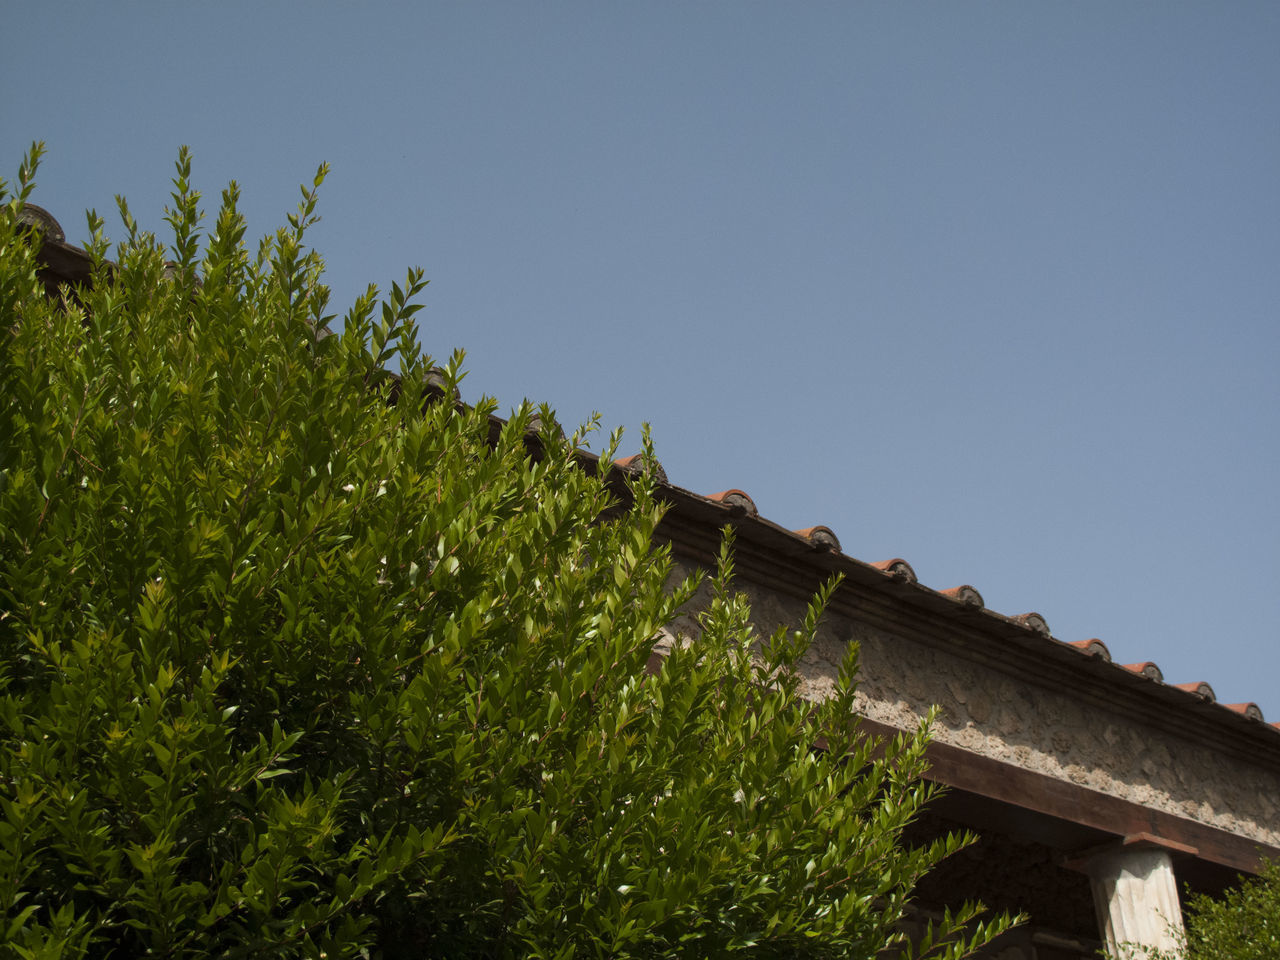 Low Angle View Of Tree Growing By Roof Against Clear Sky